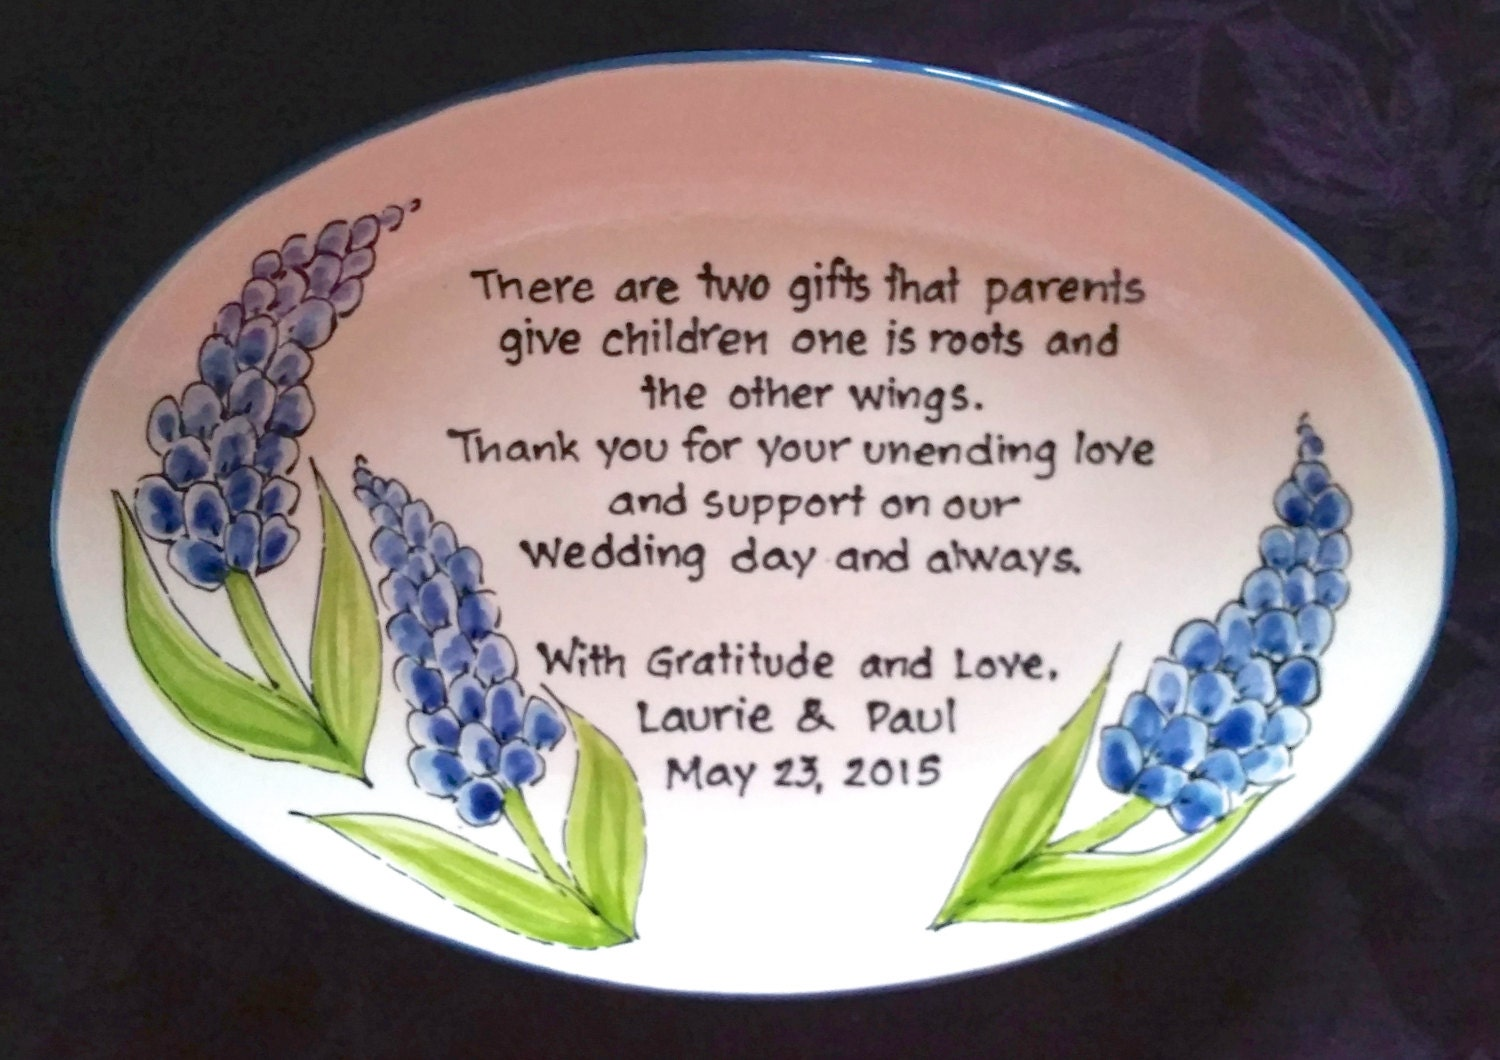 Thank You Gifts For Parents At Wedding: Wedding Gift For Parents Plate Thank You Mom And Dad